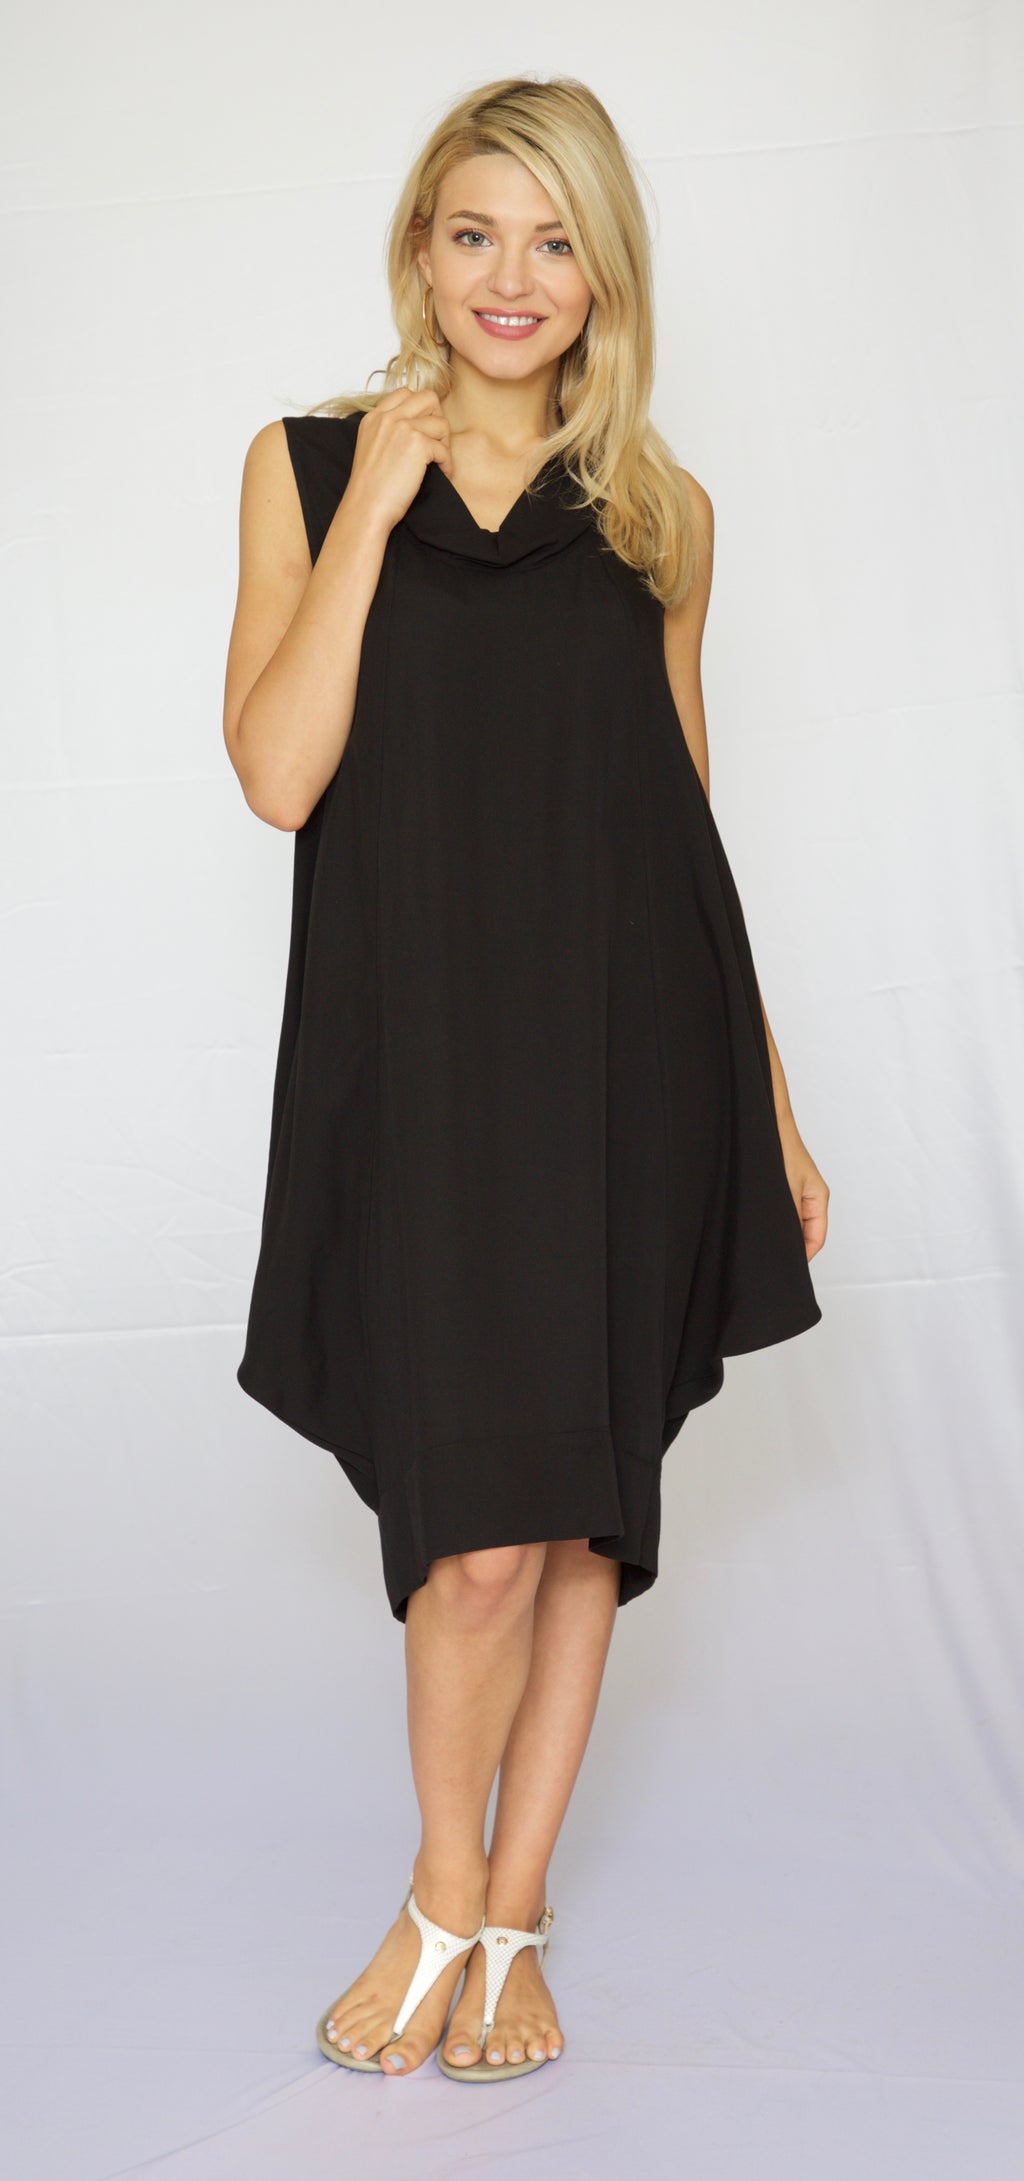 Trishia Grace-Cowl neck Sundress Solid Black Garment washed Tencel